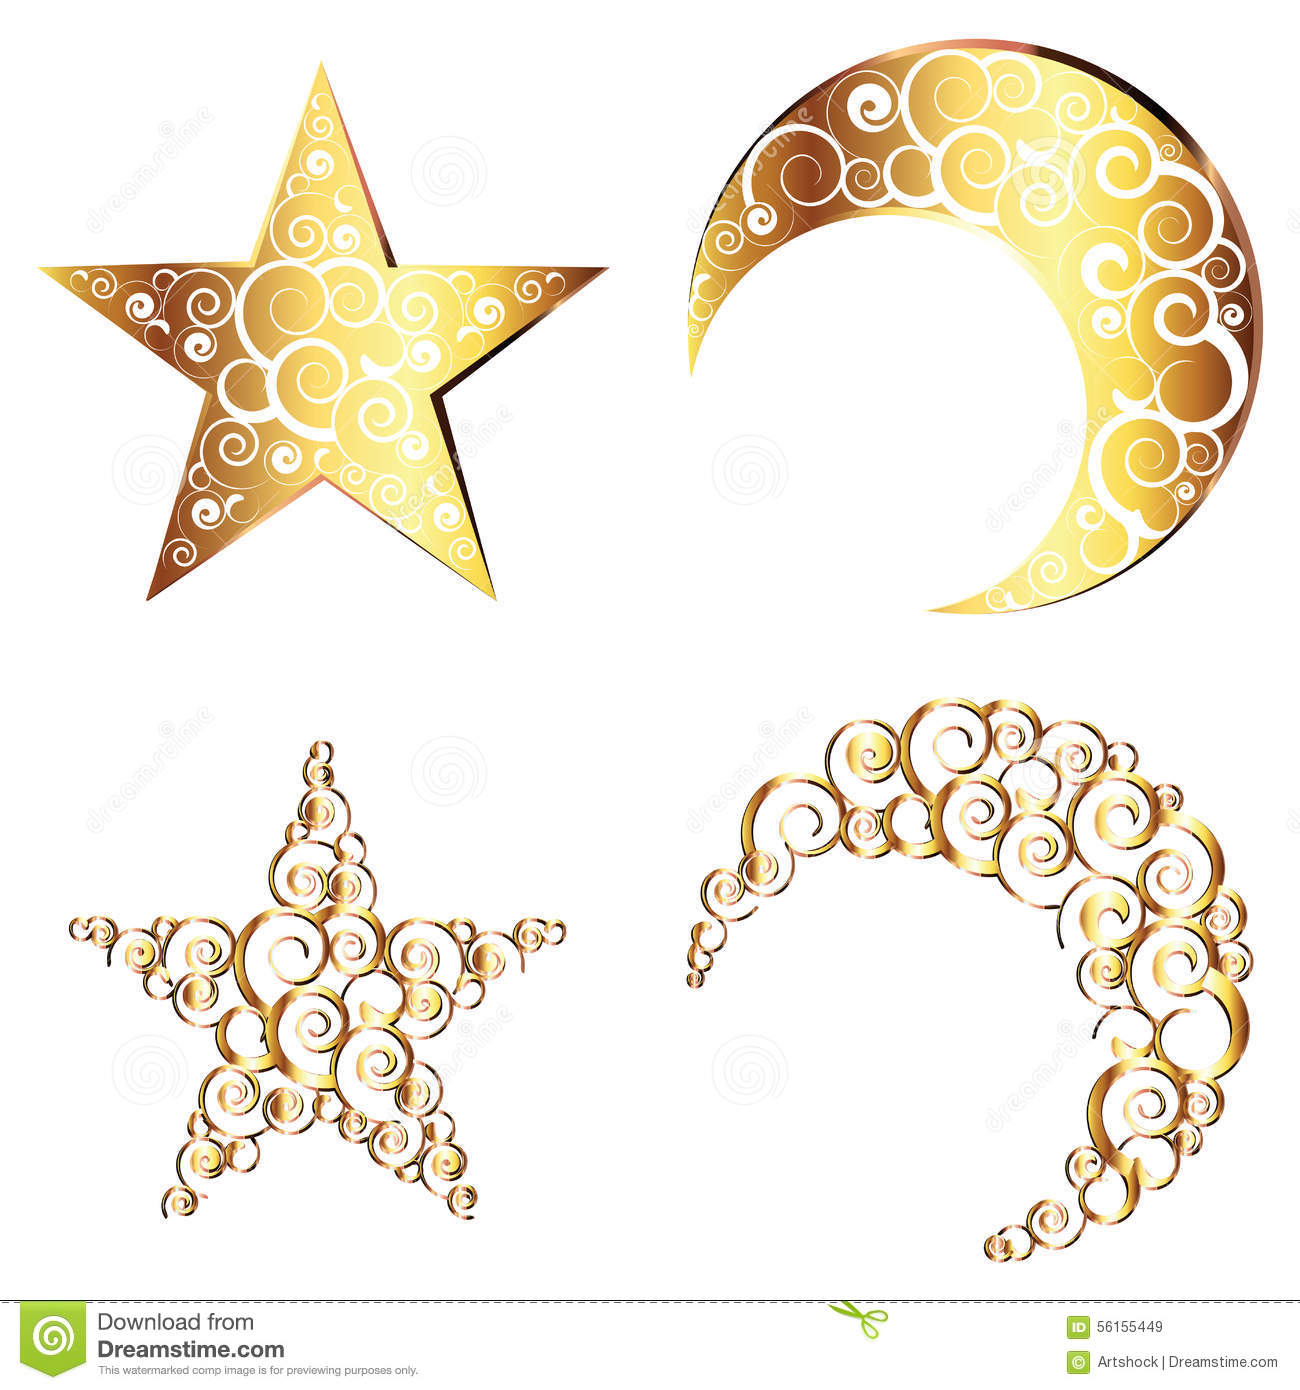 Crescent Moon And Star Symbols Stock Vector Illustration Of